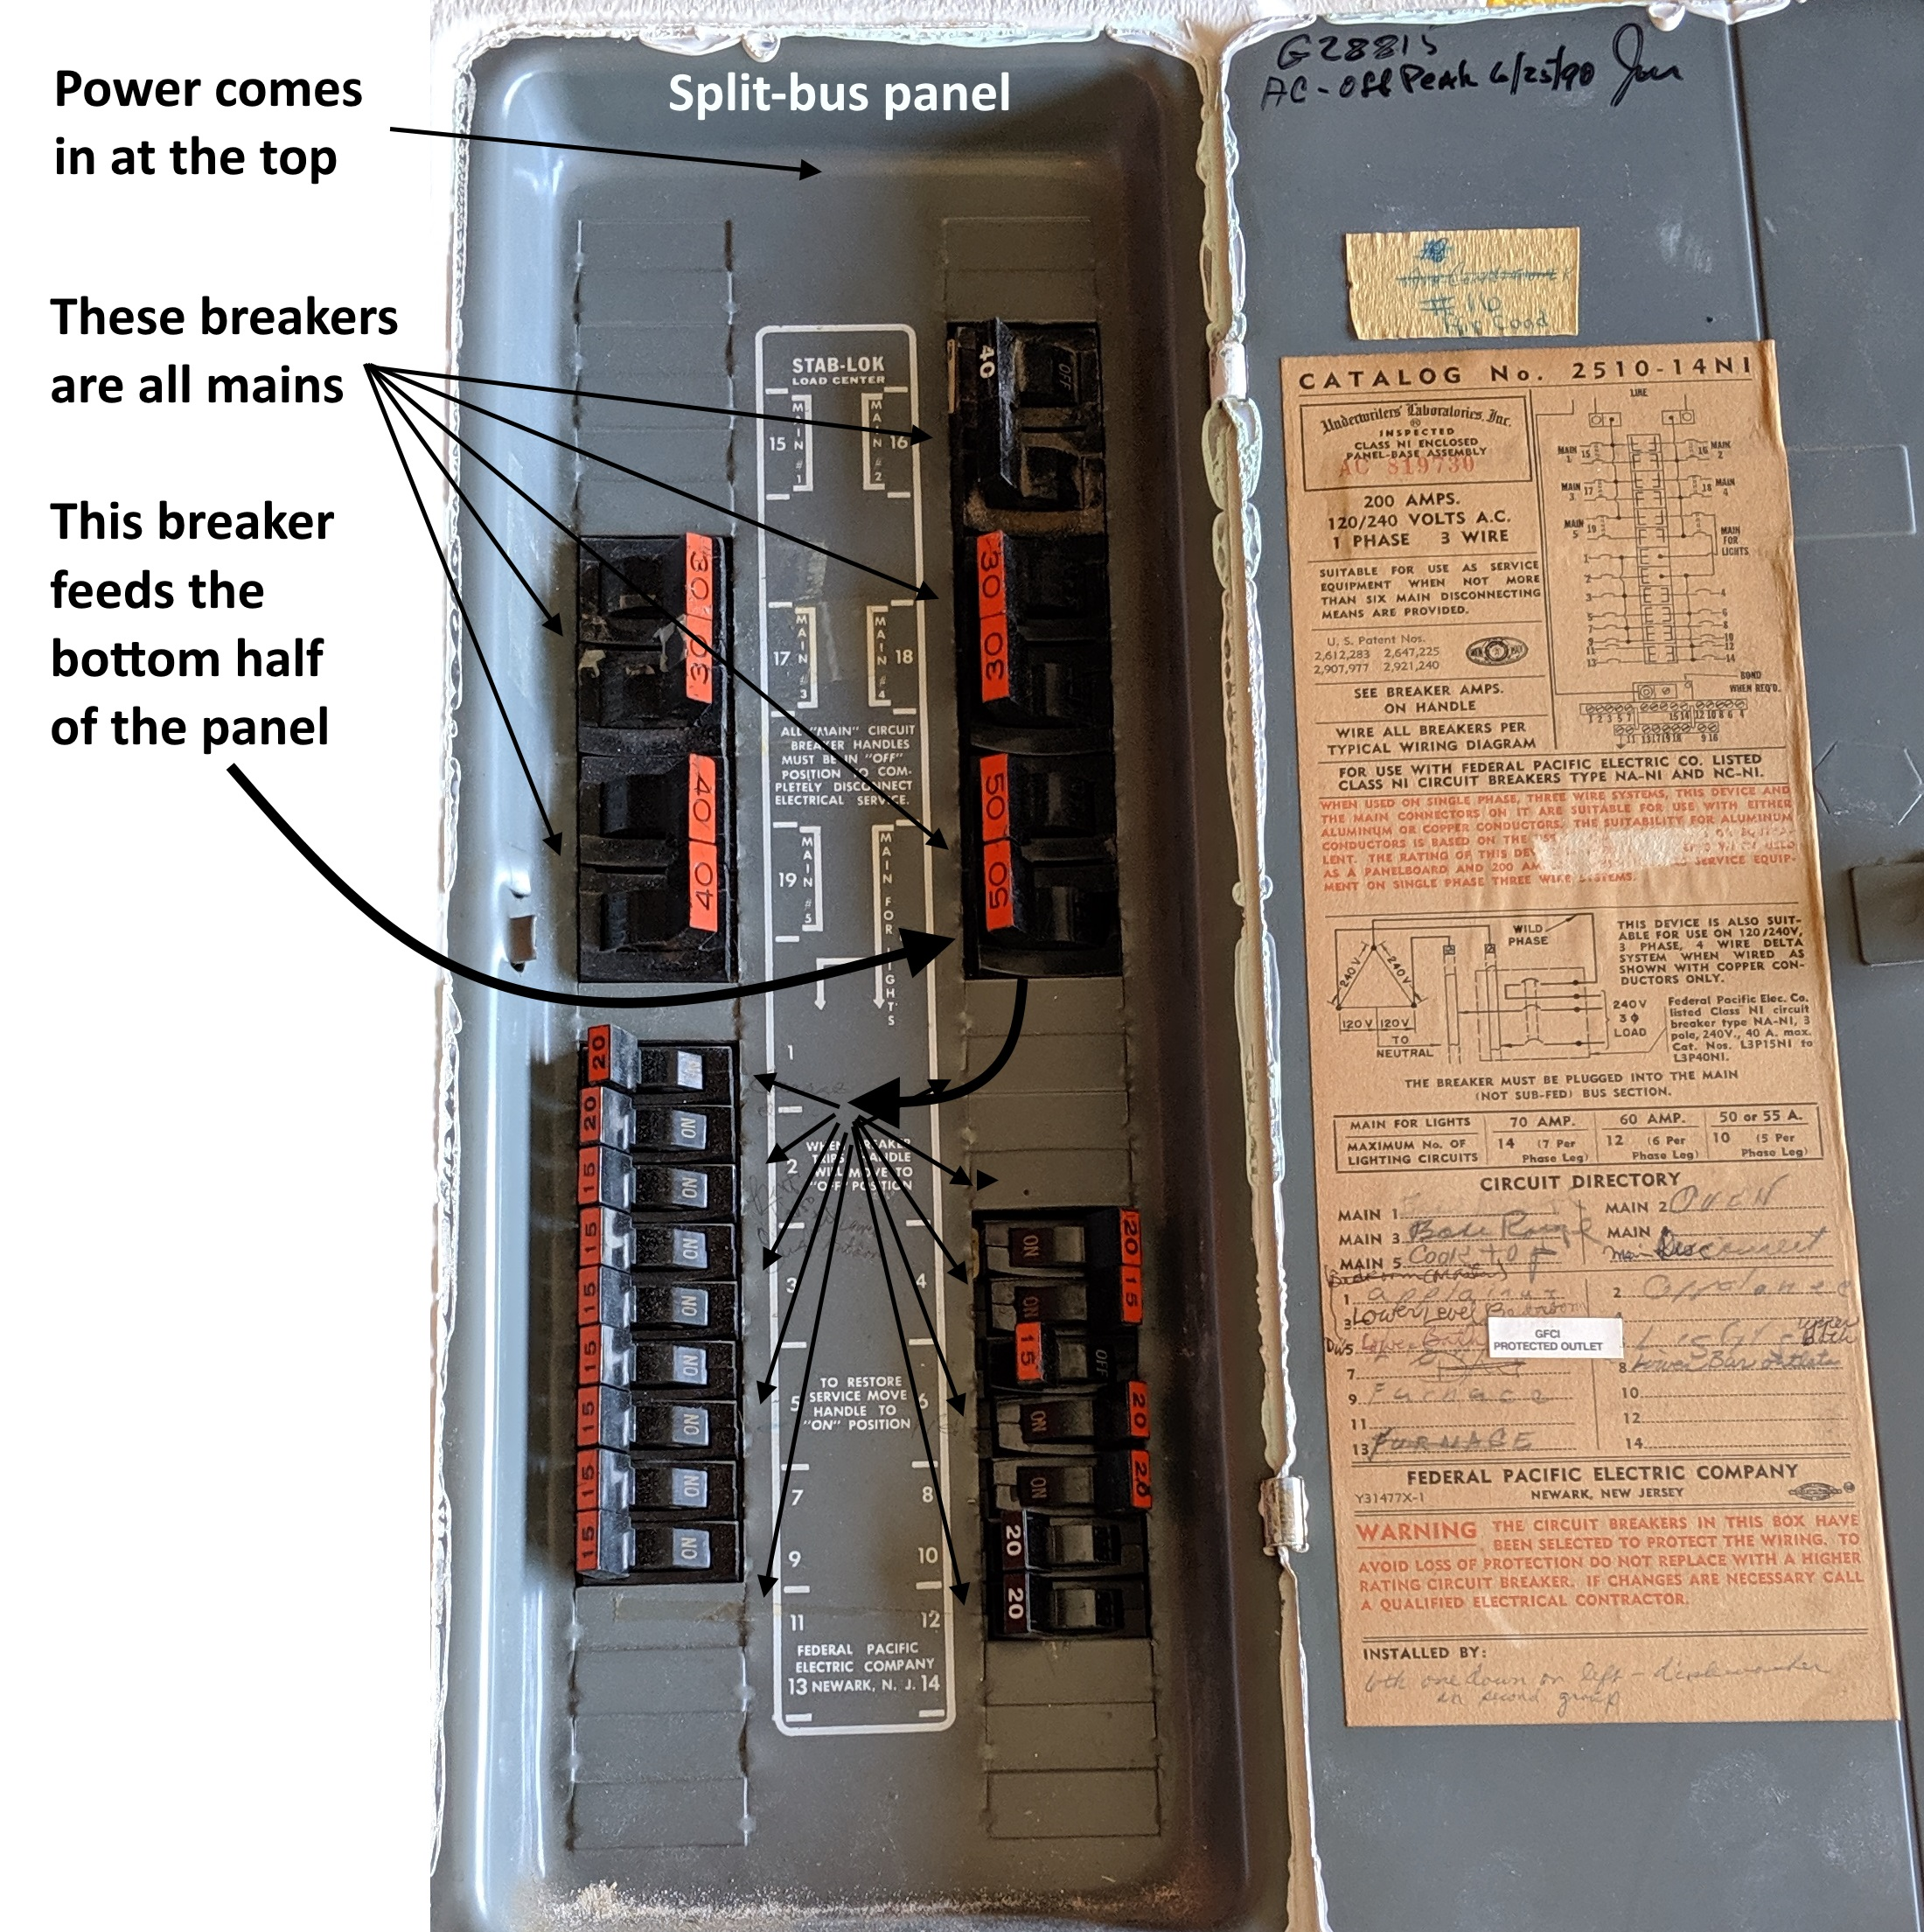 Split-bus electric panels | American Society of Home ... on